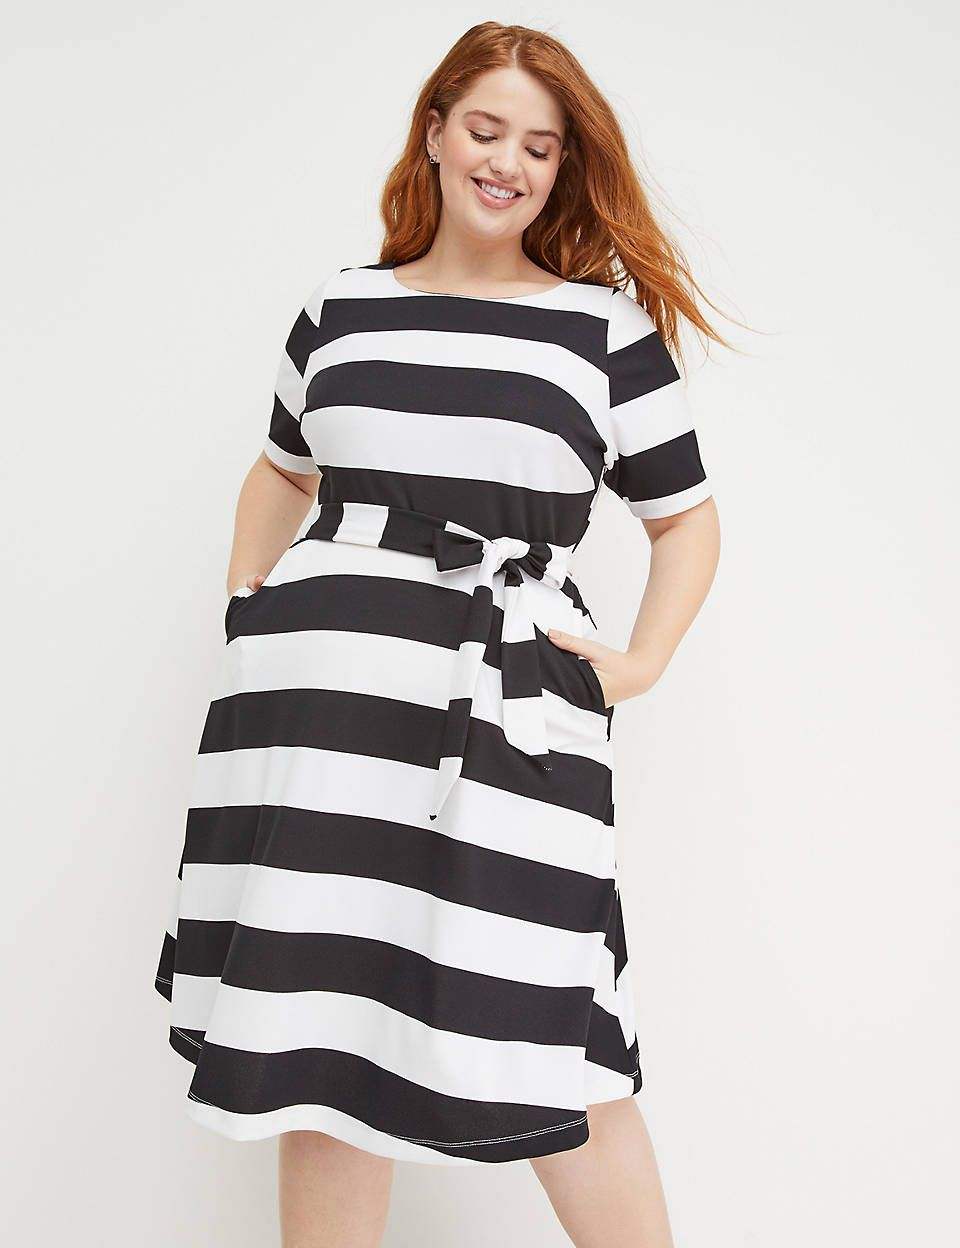 Lane Bryant Beauticurve Fit & Flare Dress - Stripe in 2019 ...